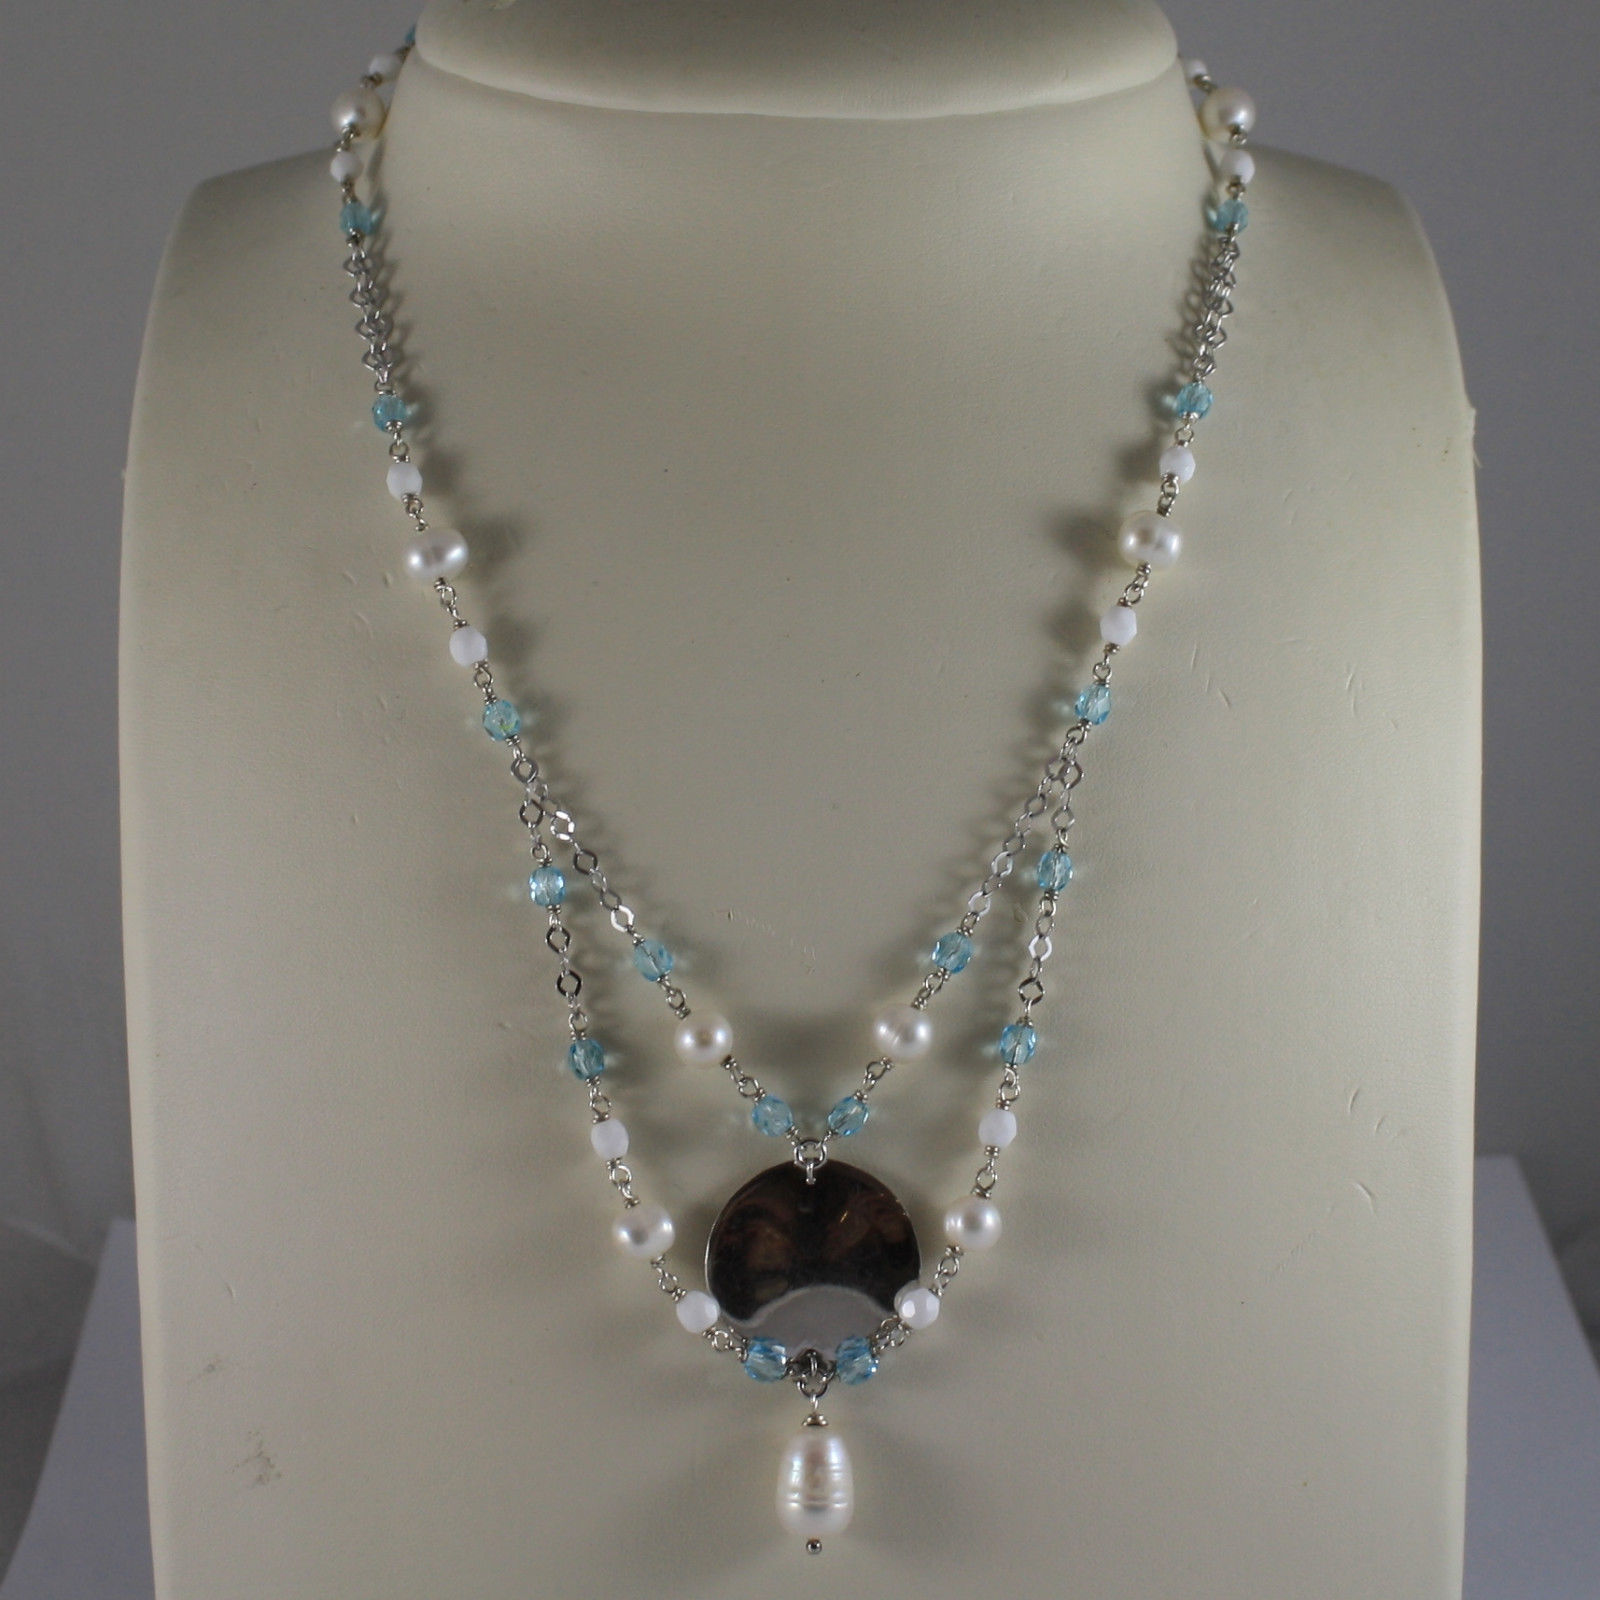 .925 SILVER RHODIUM NECKLACE WITH BLUE CRYSTALS, WHITE PEARLS AND SILVER DISC